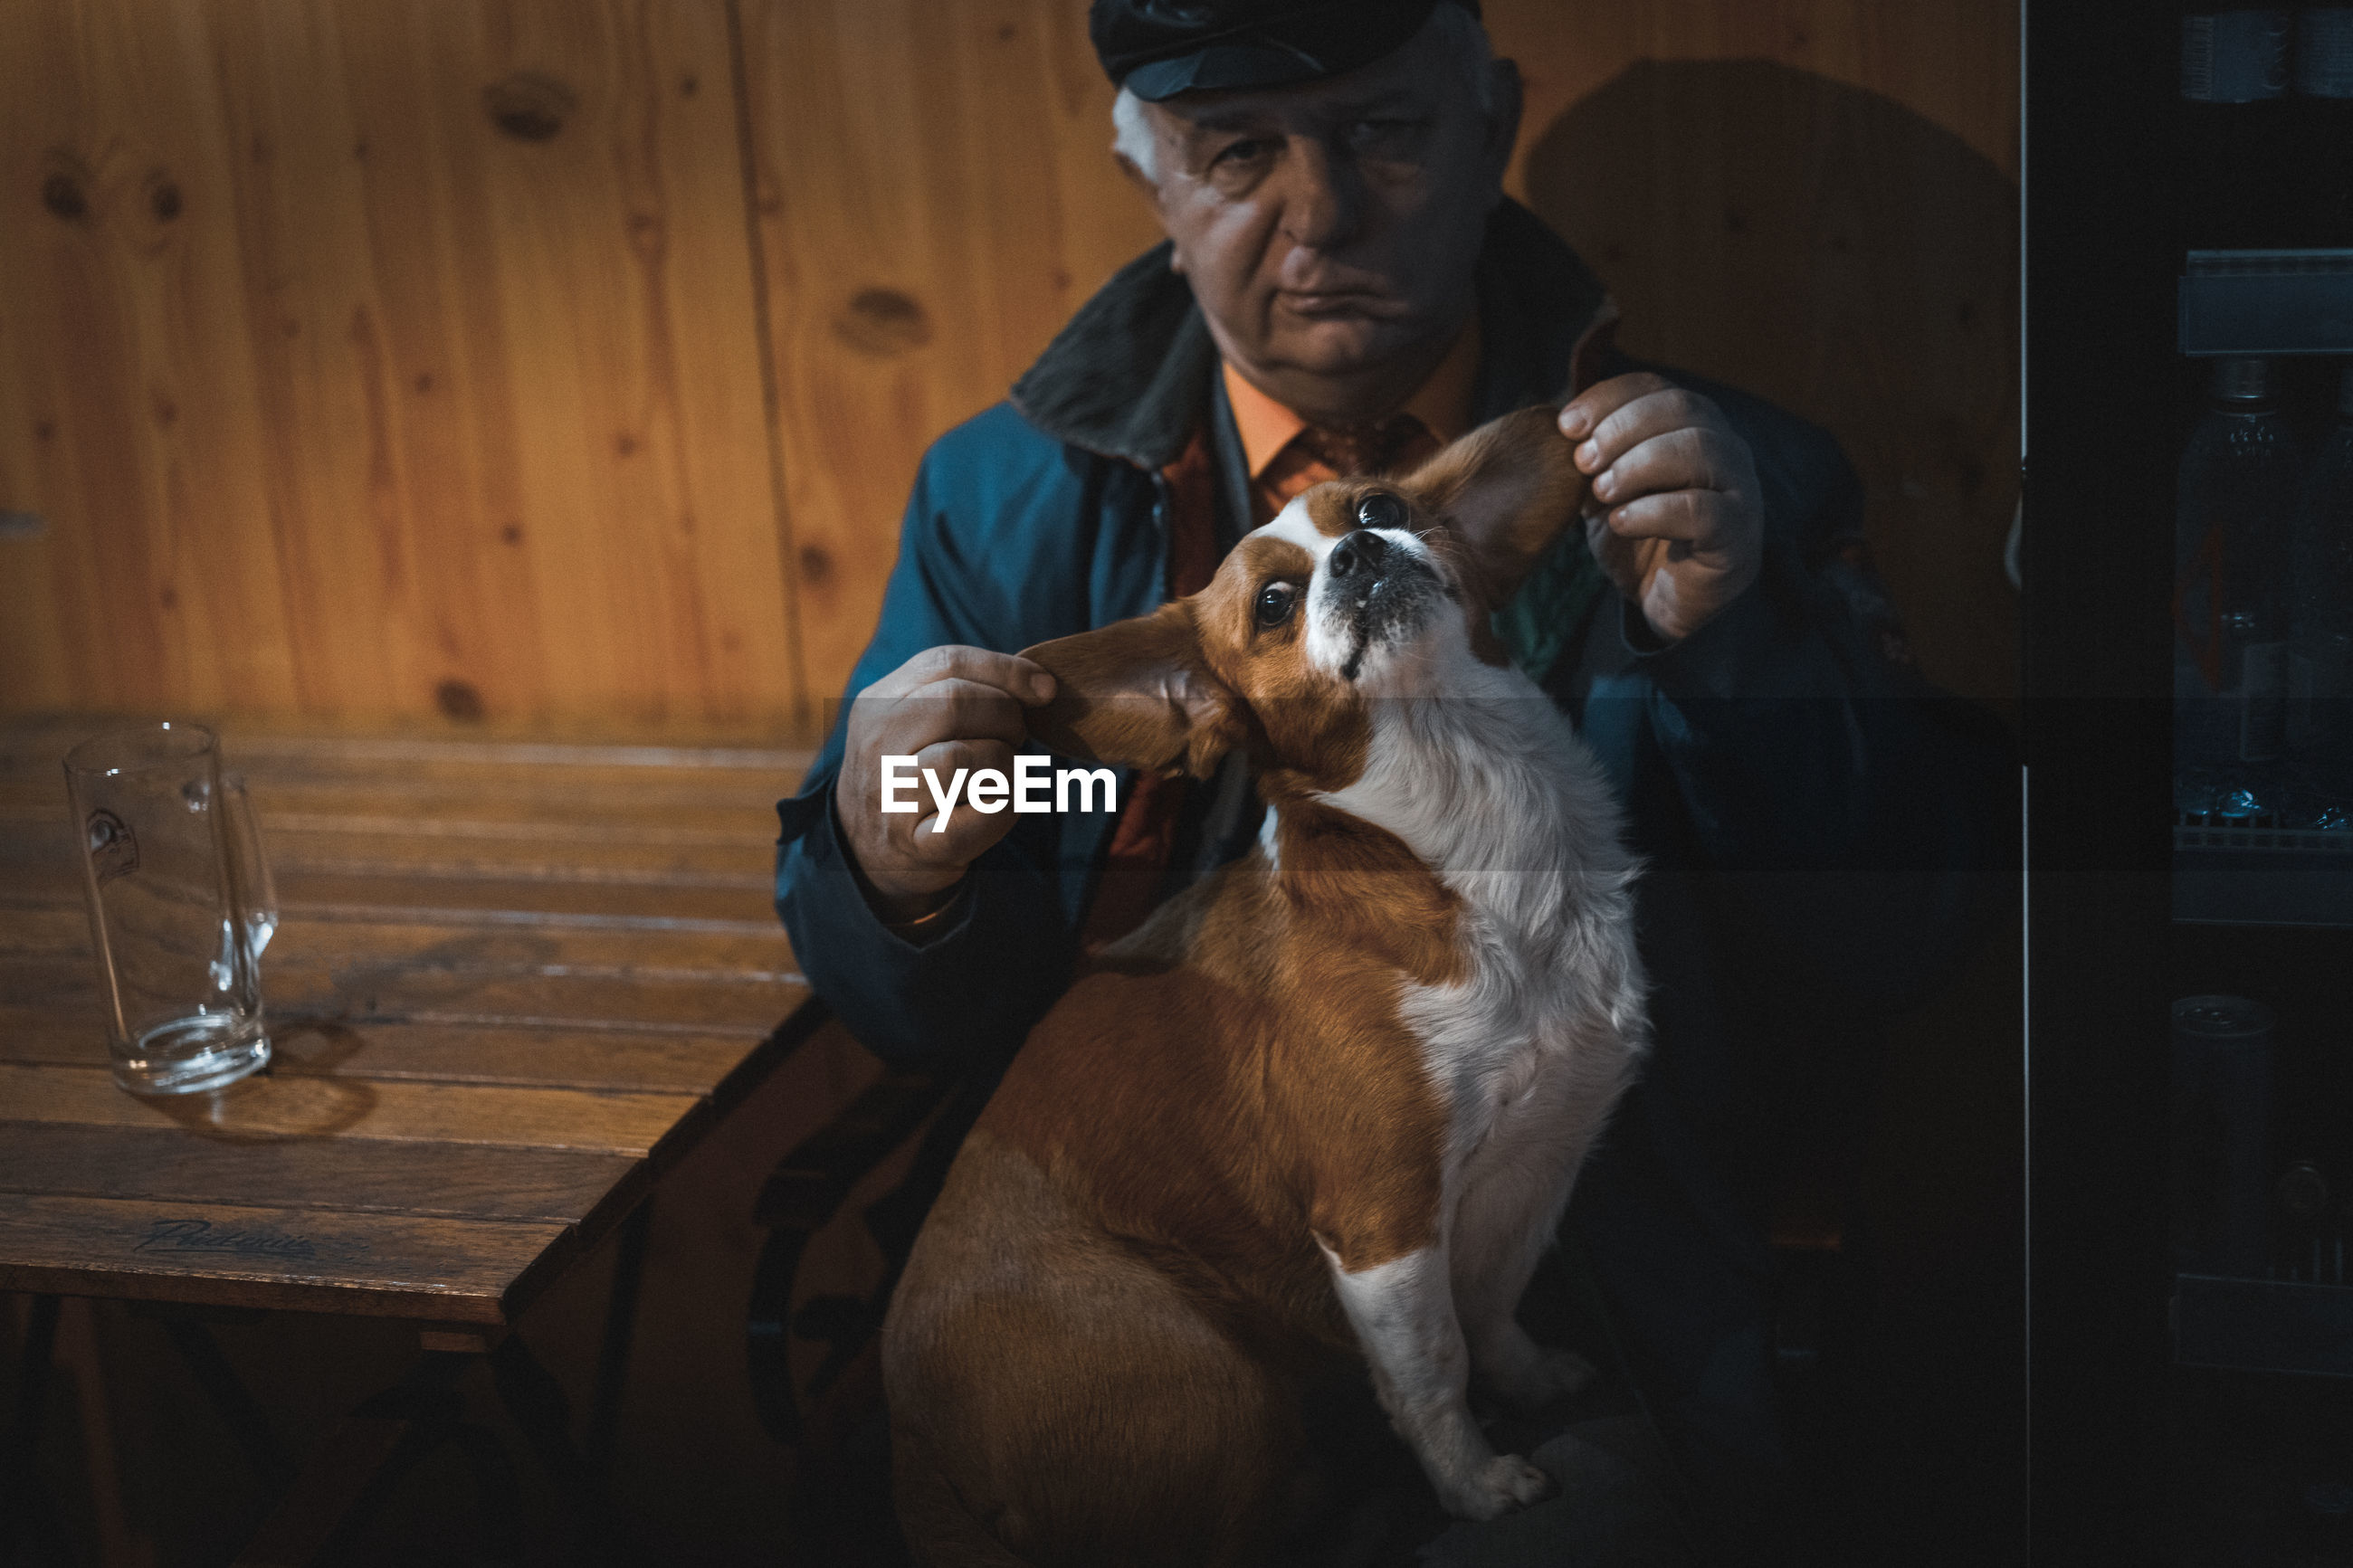 Close-up portrait of man with dog sitting on table